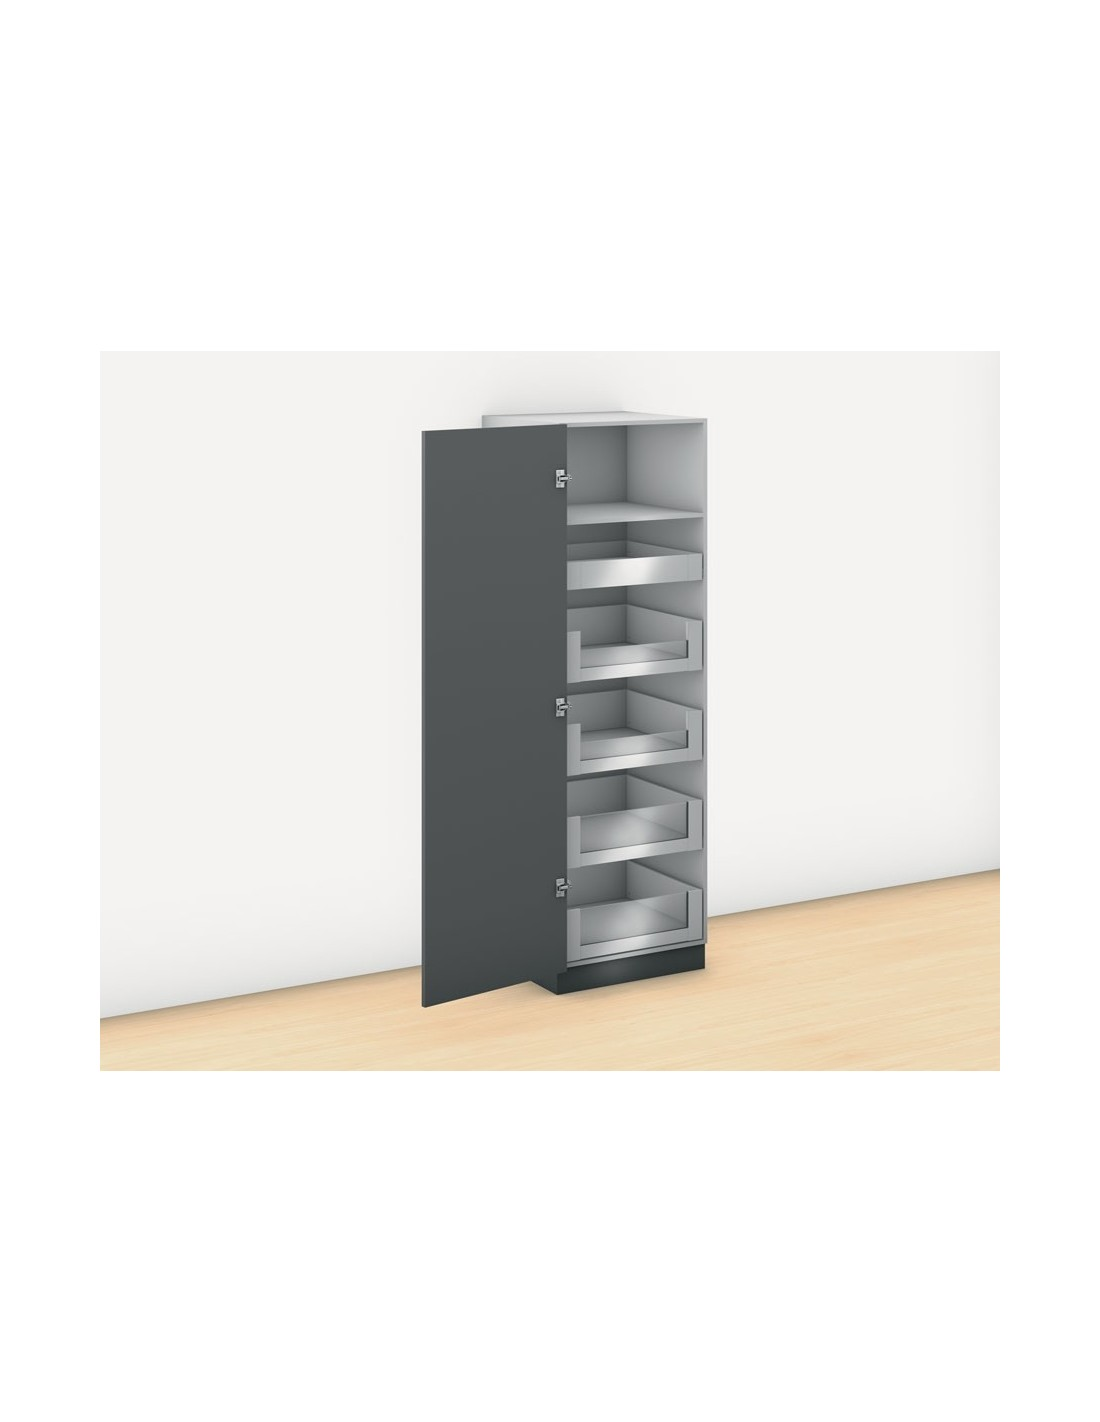 600mm wide blum legrabox free space tower internal drawers for Kitchen cabinets 500mm depth